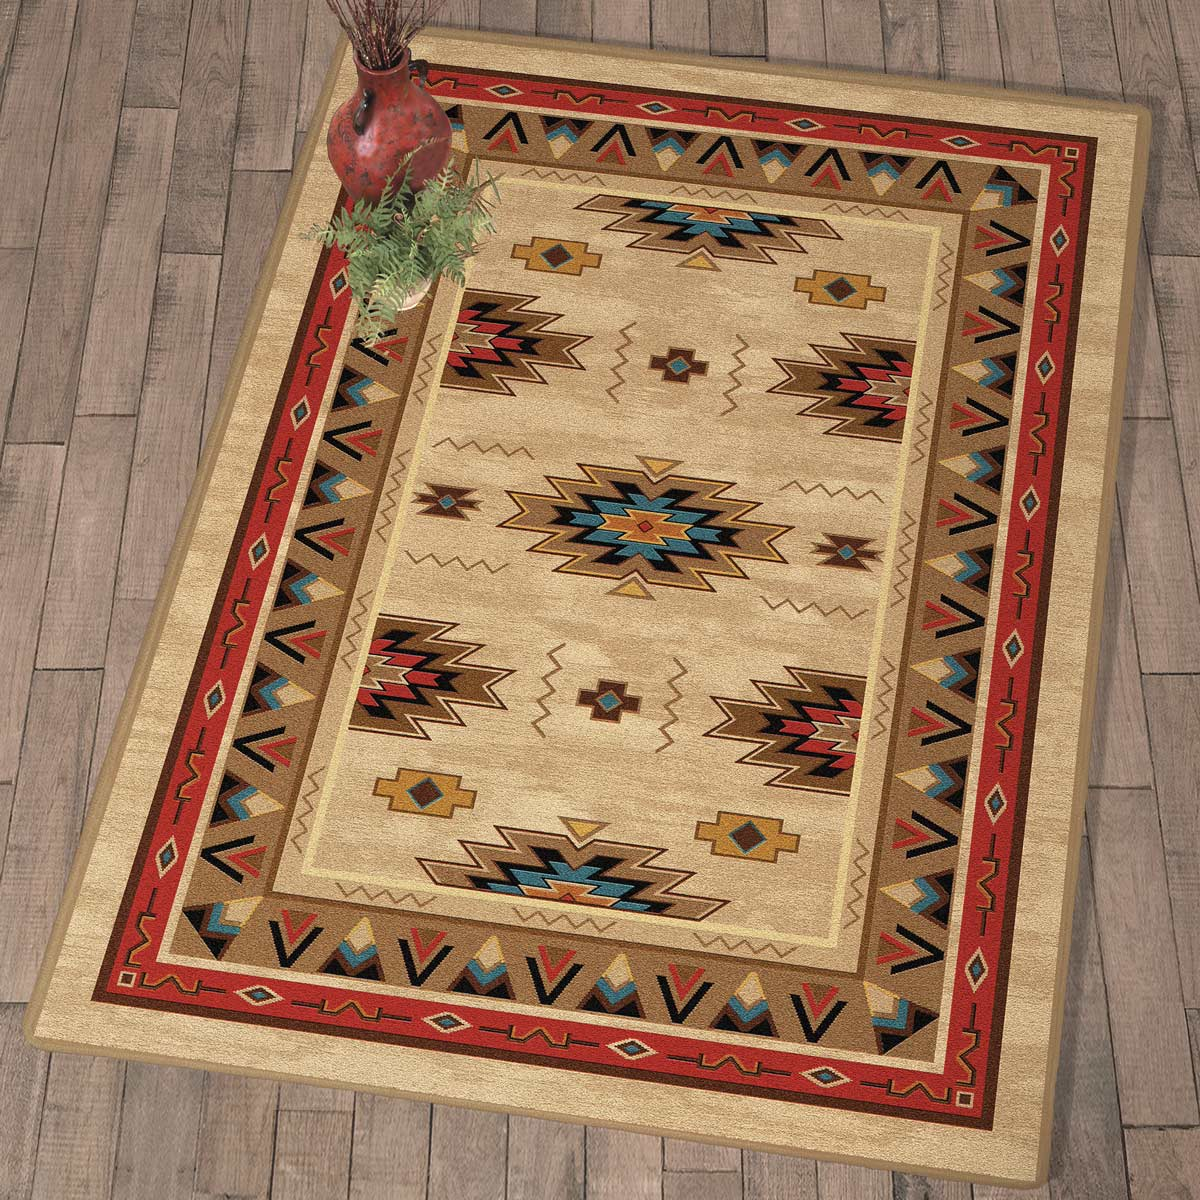 Pathfinder Trails Rug - 5 x 8